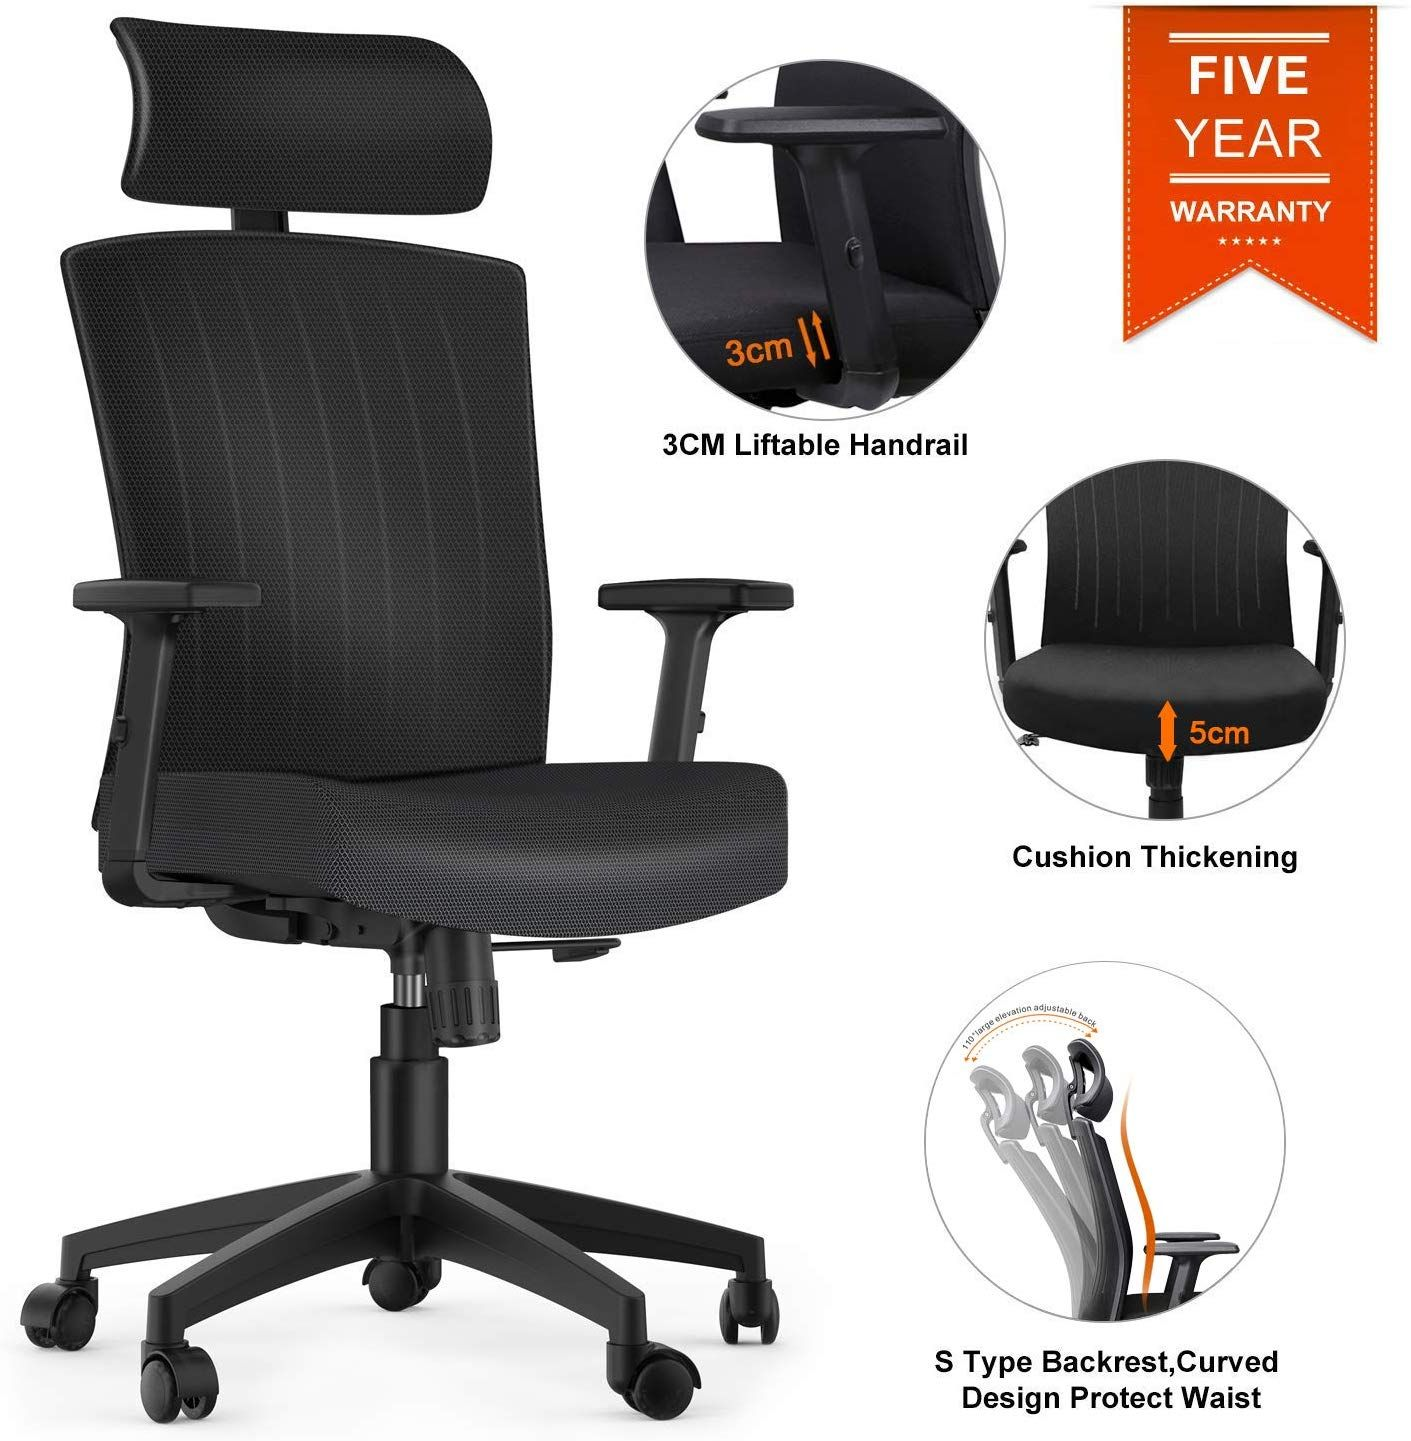 Komene Office Desk Chair 5 Years Warranty Weight Hold Up 250ibs Comfortable Thick Seat Cushion Ergonomic Computer Chair With Adjustable Headrest Armrests Seat Computer Chair Ergonomic Office Chair Office Chair